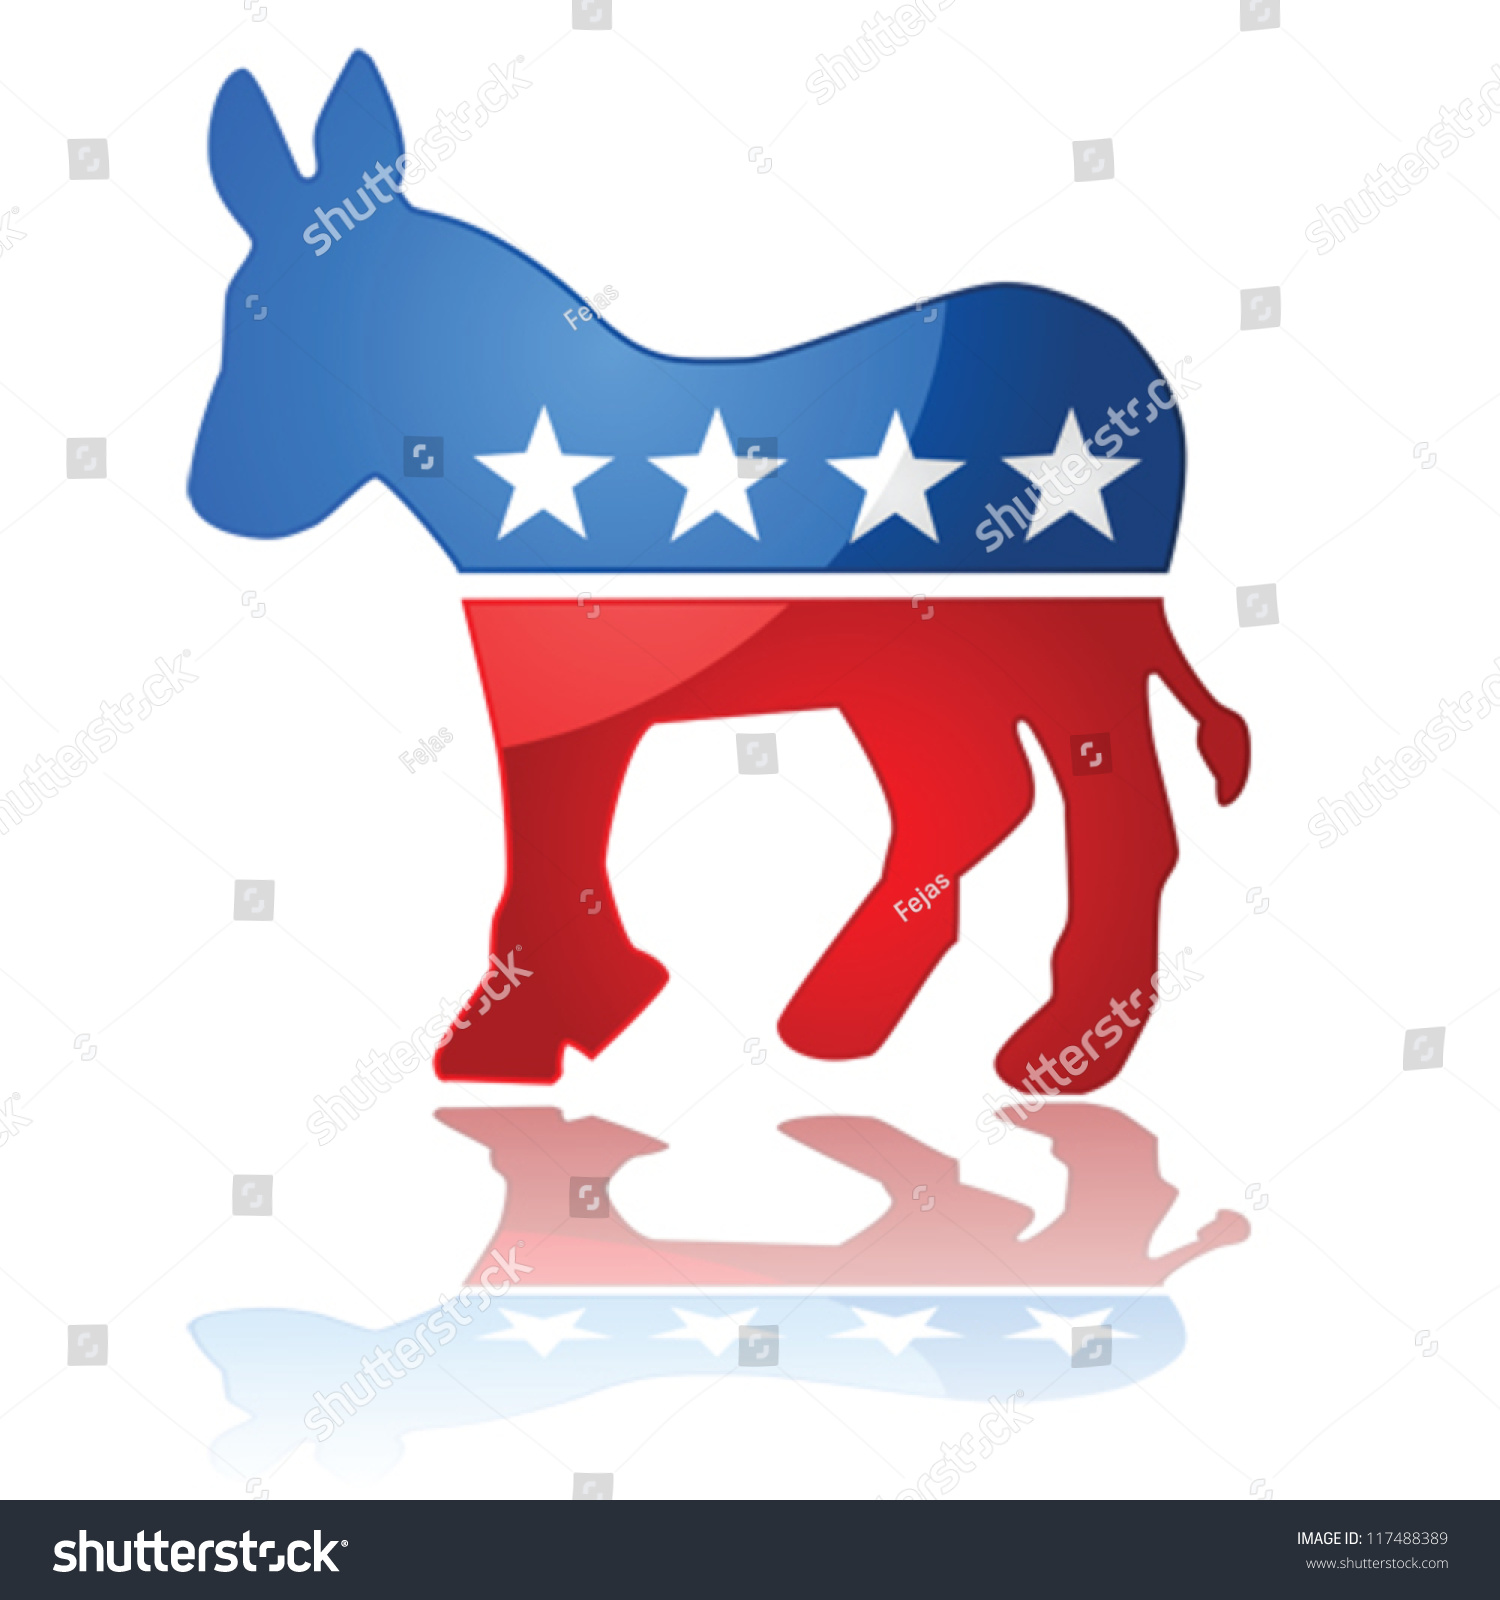 an overview of the democratic and republican parties of the united states The house of representatives likewise had overwhelming democratic majorities the republican party in the united states, the republican party has.